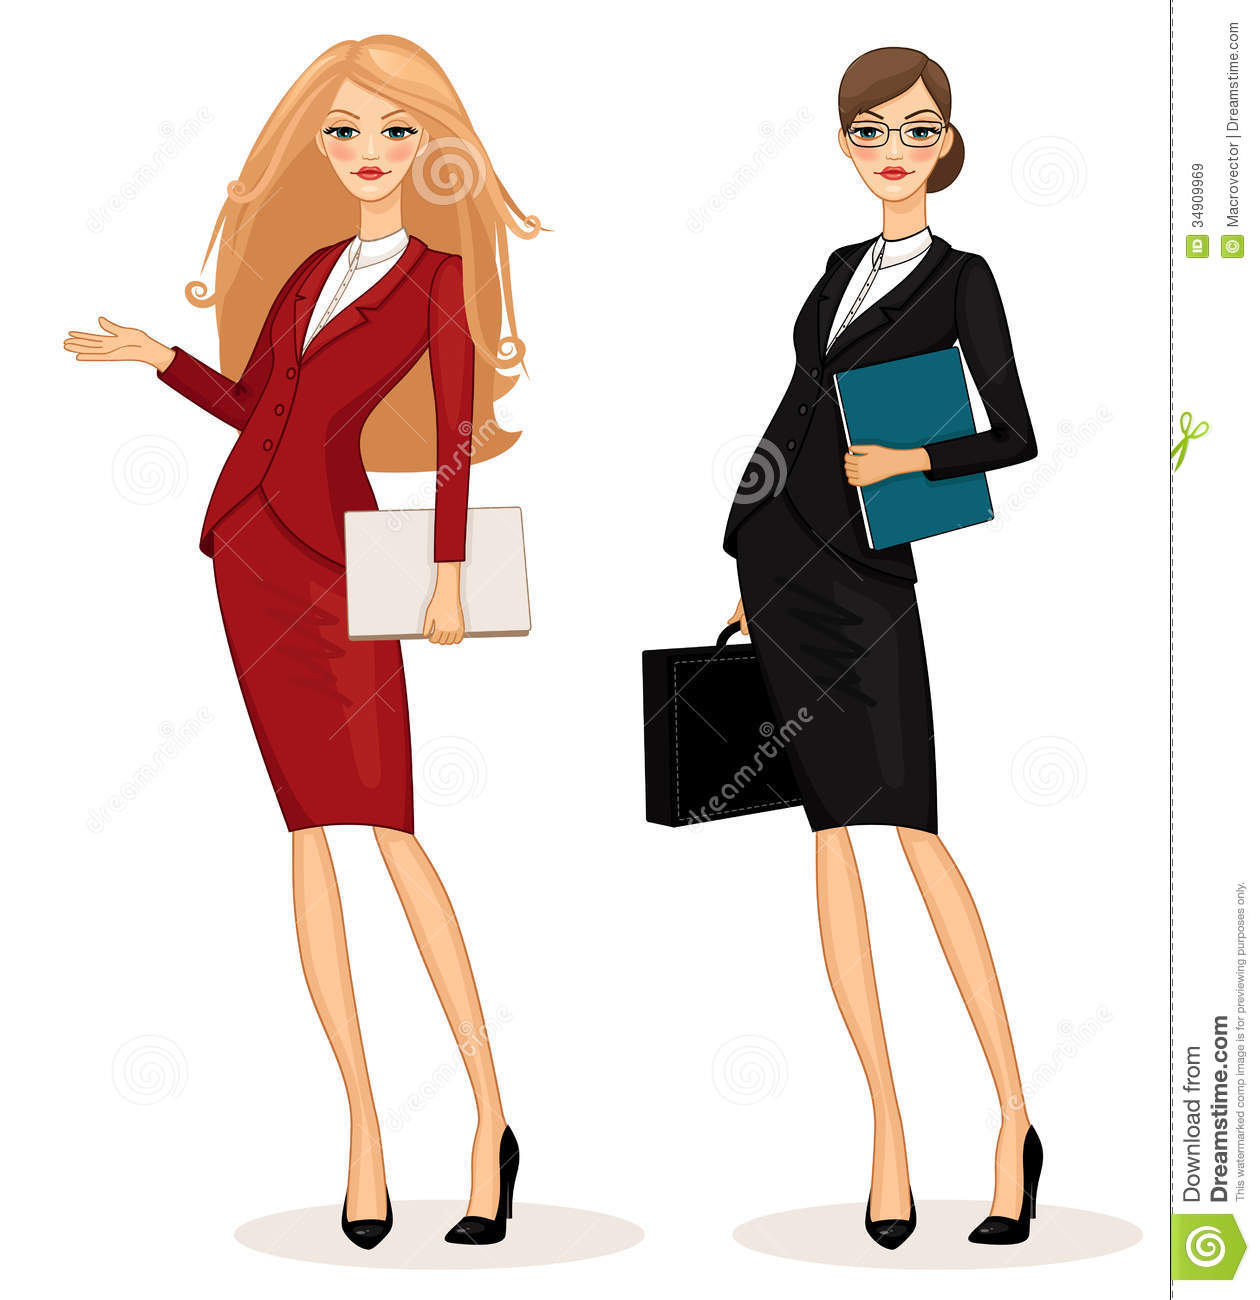 business-woman-successful-set-vector-illustration-34909969.jpg